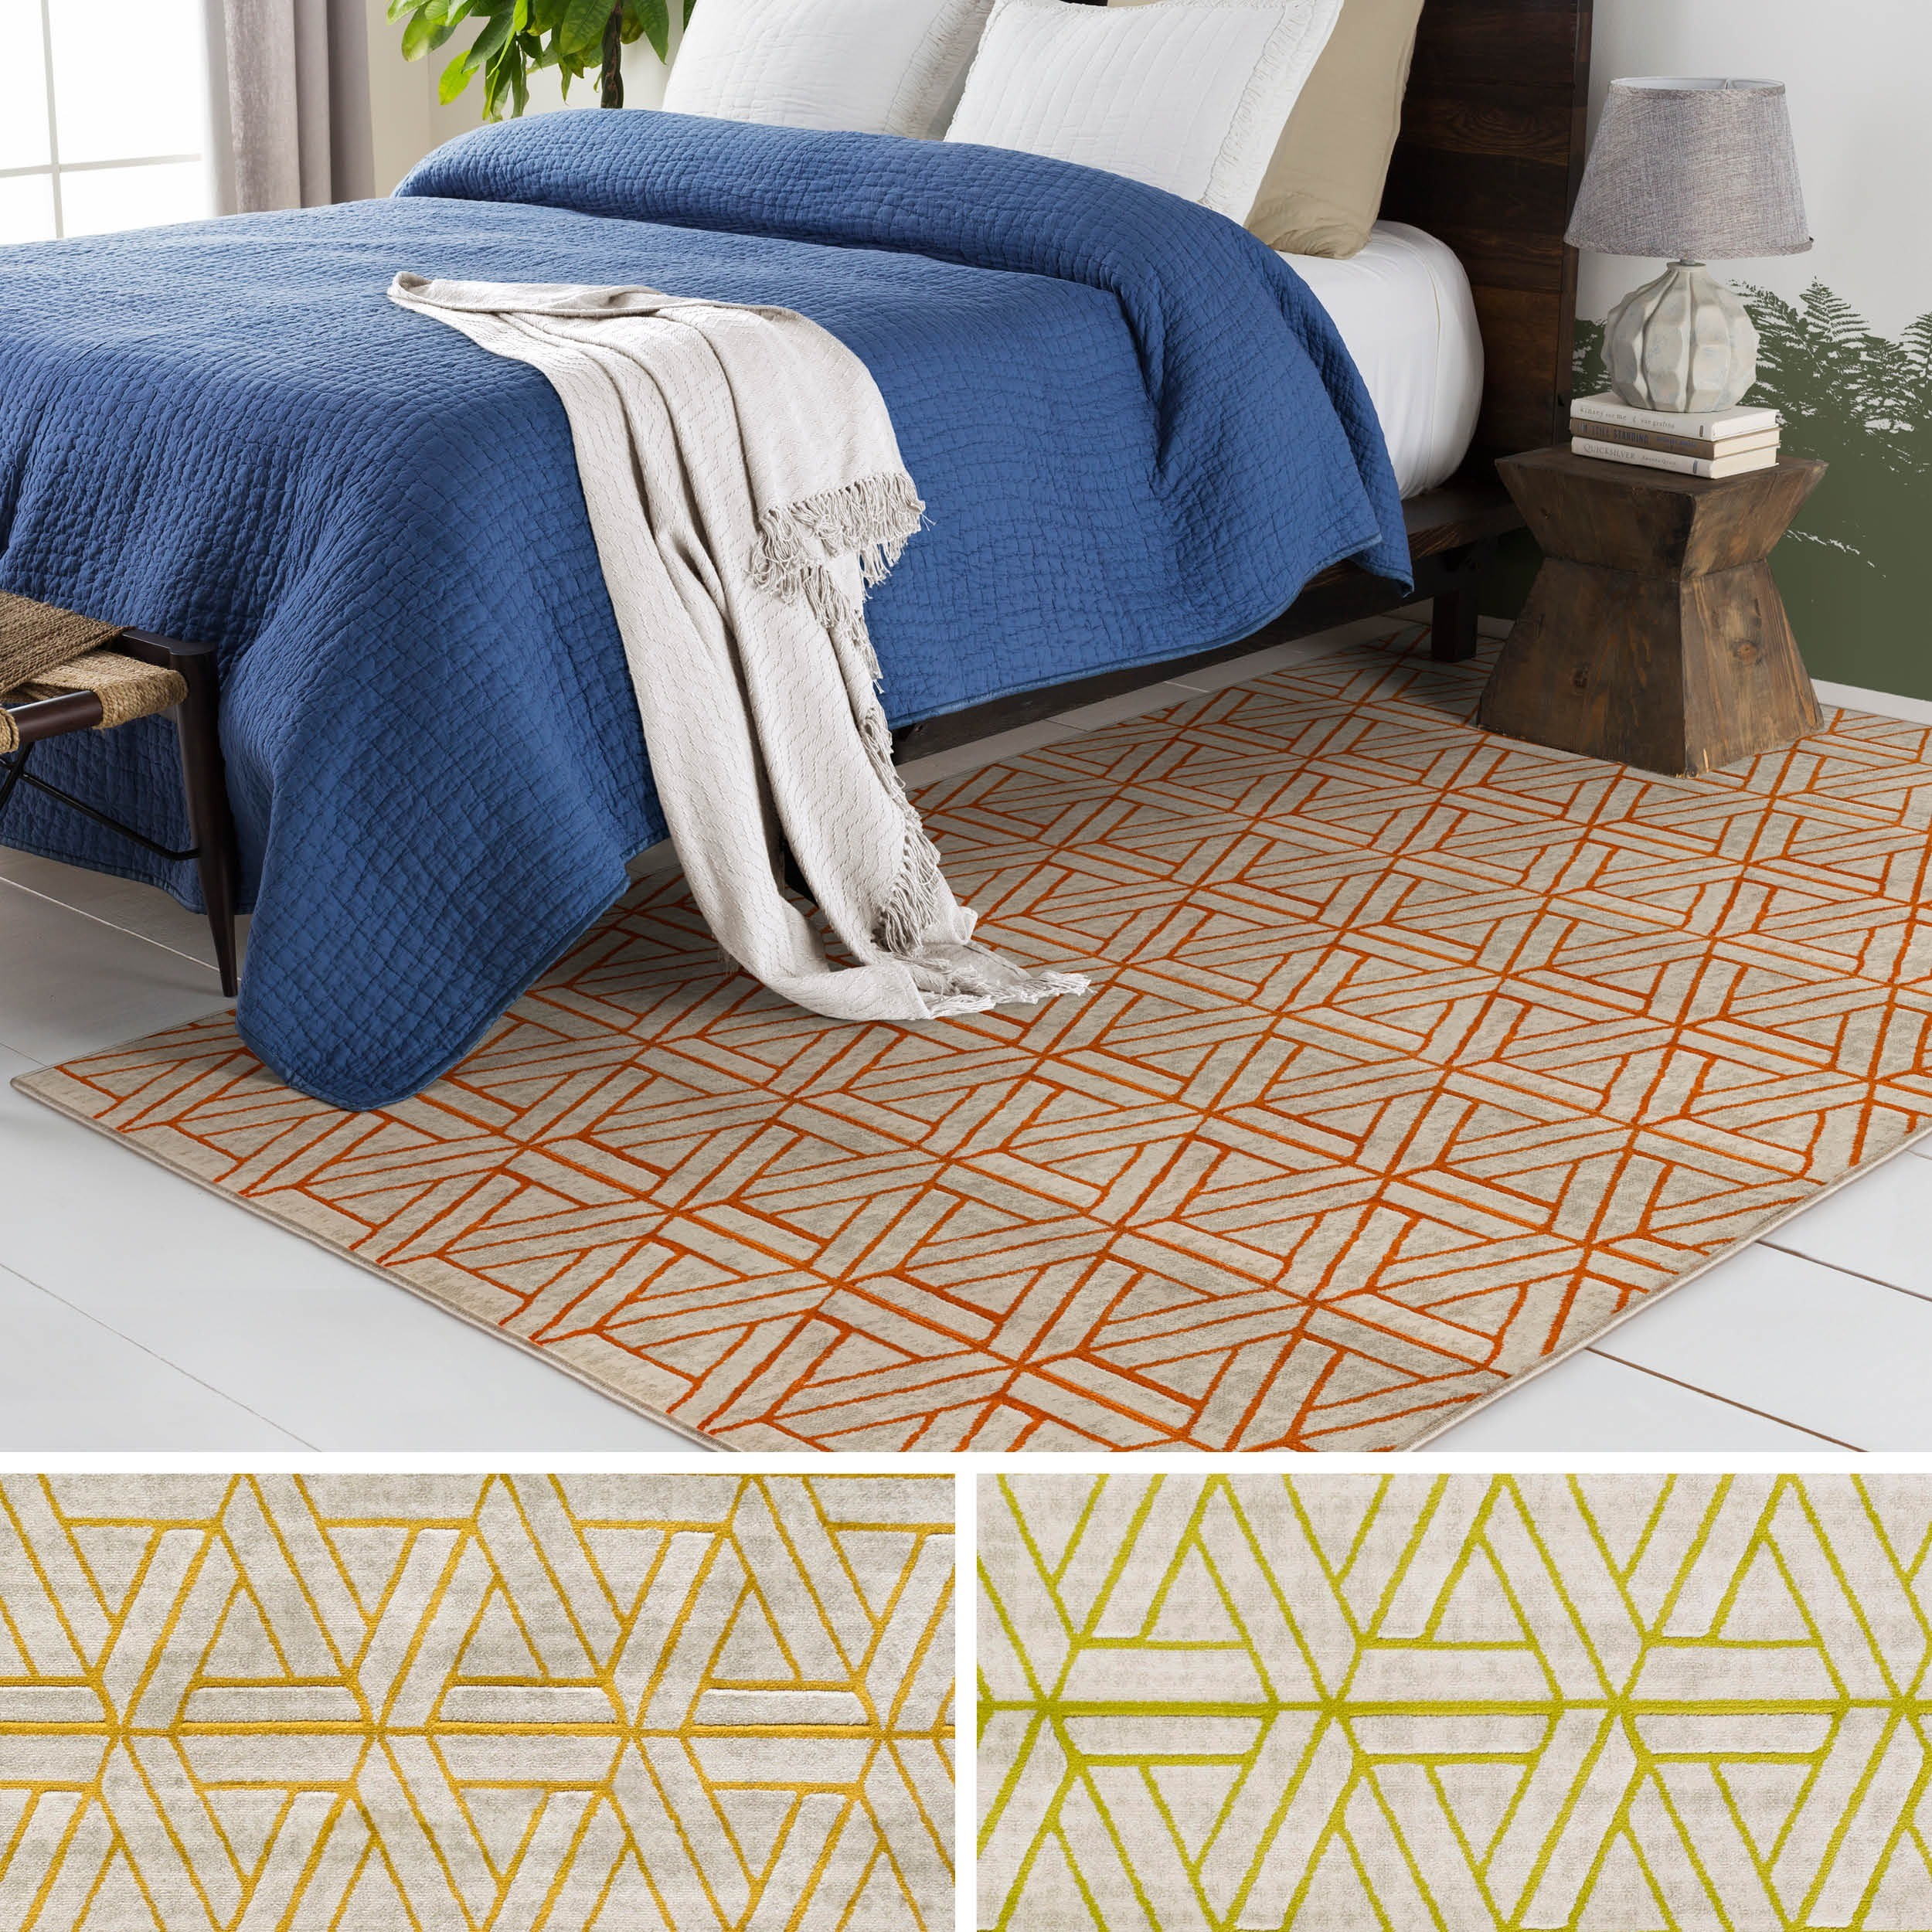 Shop Hiromi Area Rug 5 2 X 7 6 Free Shipping On Orders